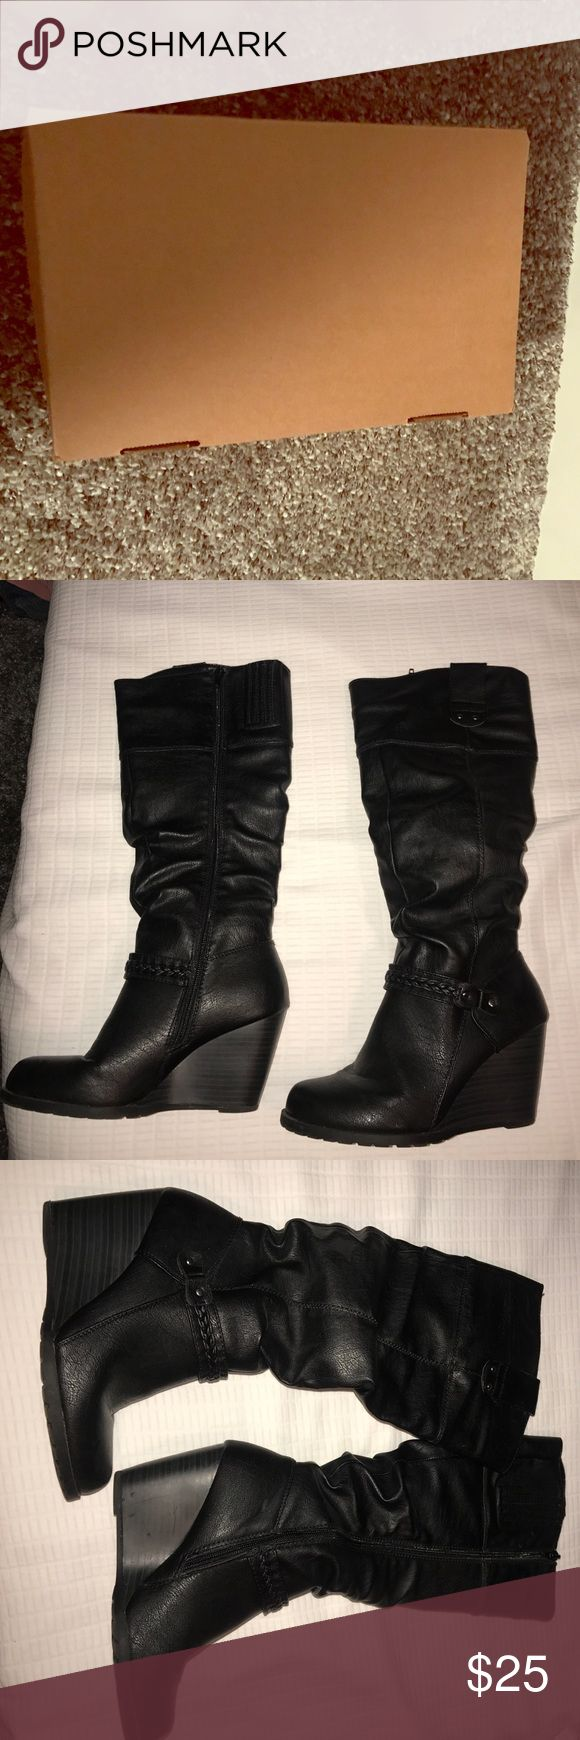 Size 7 women's knee high wedge boots black Black women's size 7 boots wedges, these are never worn and will come with the box I bought them in. They come right below the knee Sbicca Shoes Heeled Boots